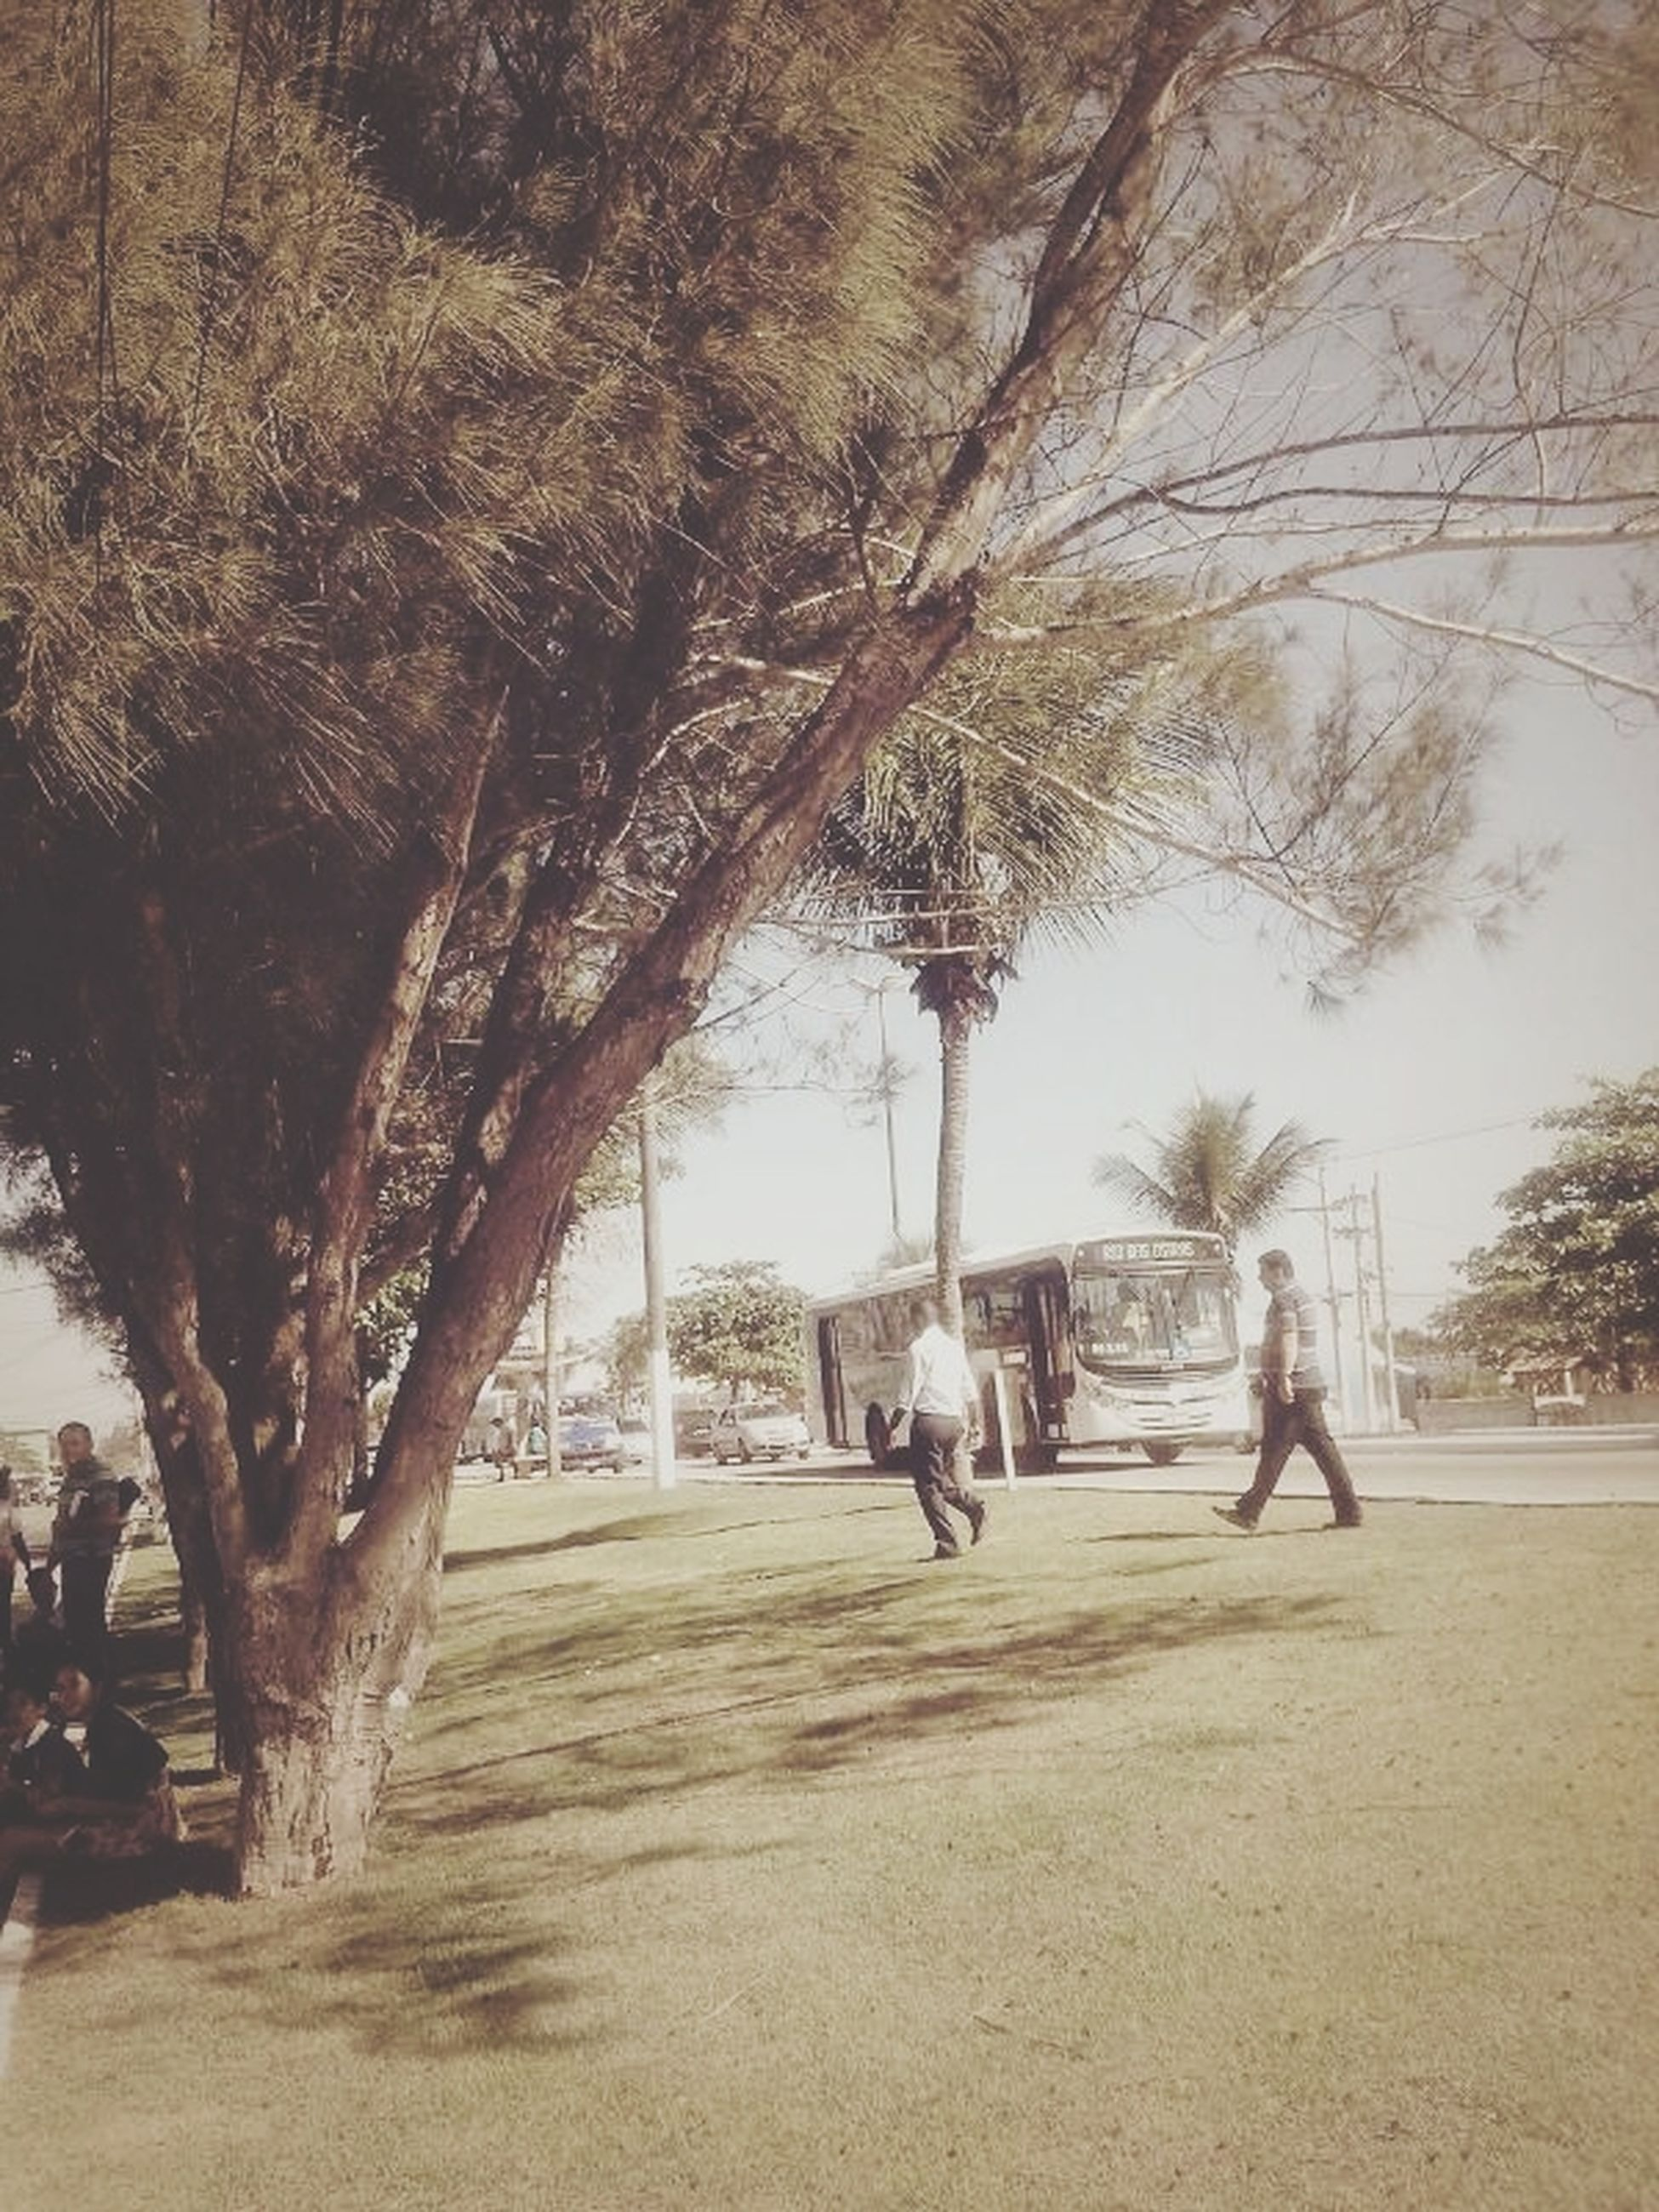 tree, lifestyles, men, tree trunk, leisure activity, person, park - man made space, growth, sunlight, branch, nature, walking, medium group of people, shadow, street, outdoors, day, footpath, large group of people